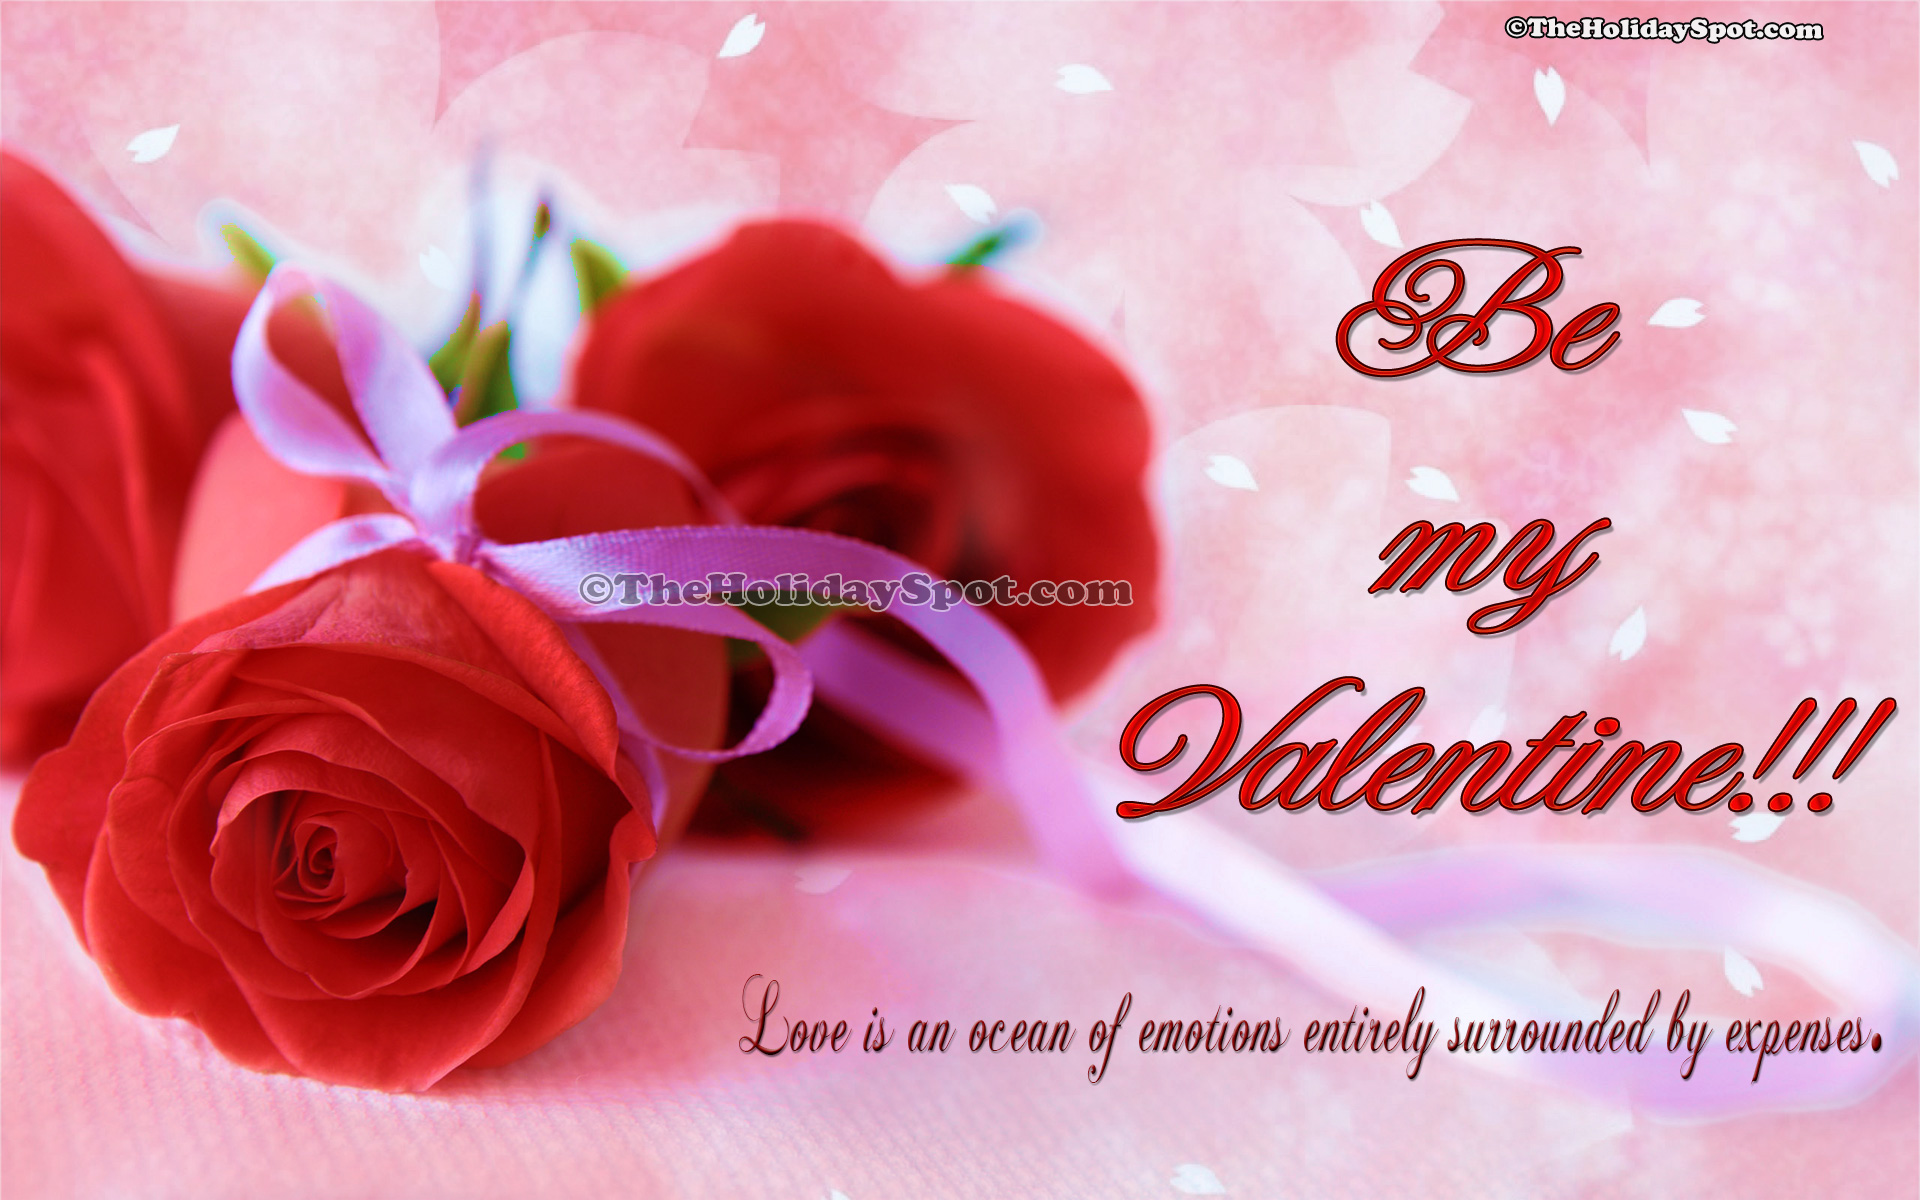 Wallpaper download in love - Hd Valentine S Day Wallpapers Of Two Red Roses